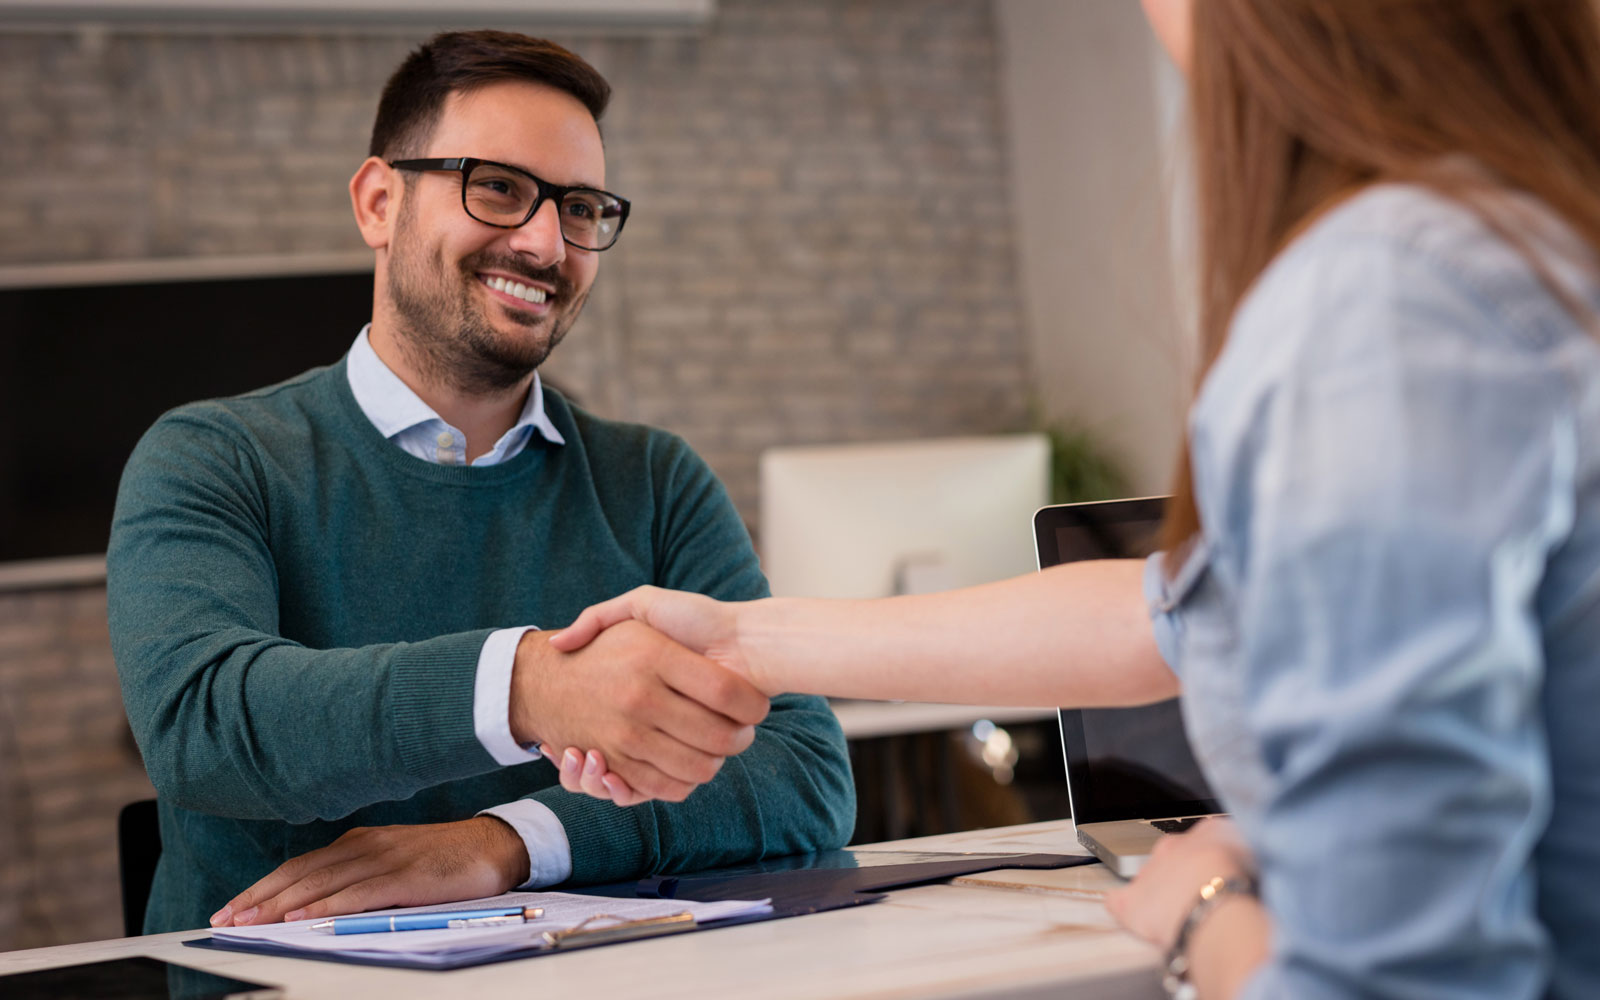 Professional man shaking hands newly hired employee